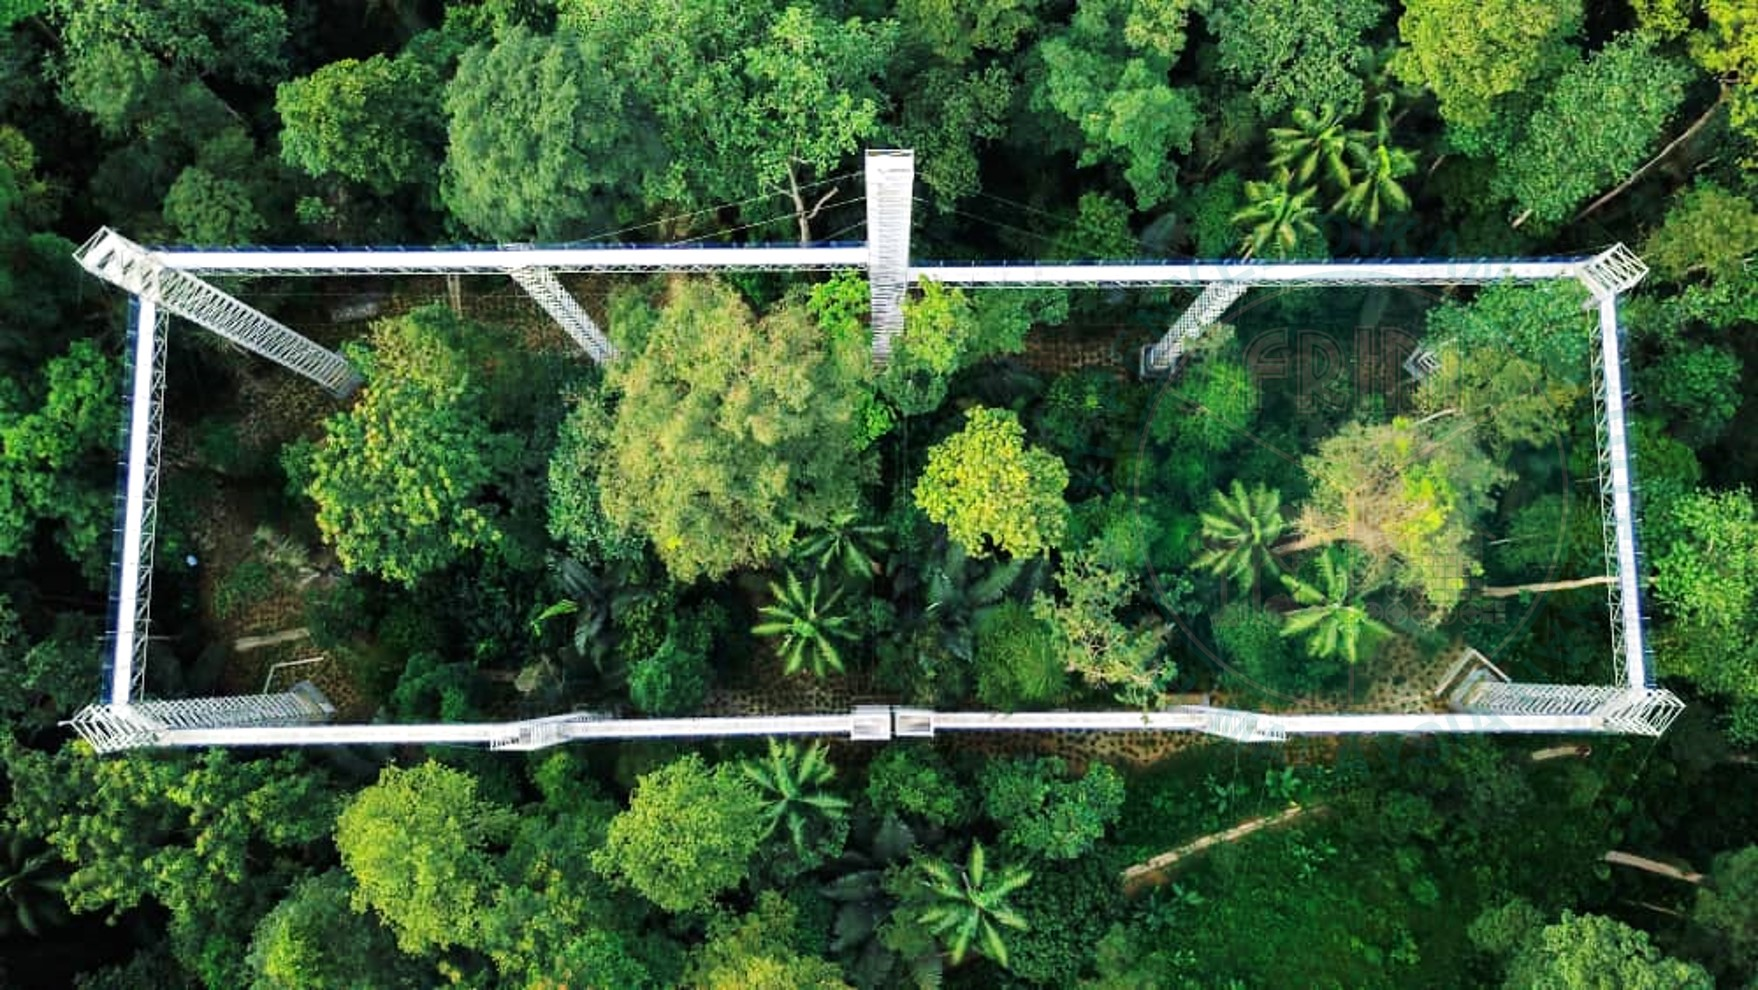 The 'Forest Skywalk' will open on 31 August, with an entrance fee of RM15 per adult (MyKad holders) and RM40 (non-MyKad holders).